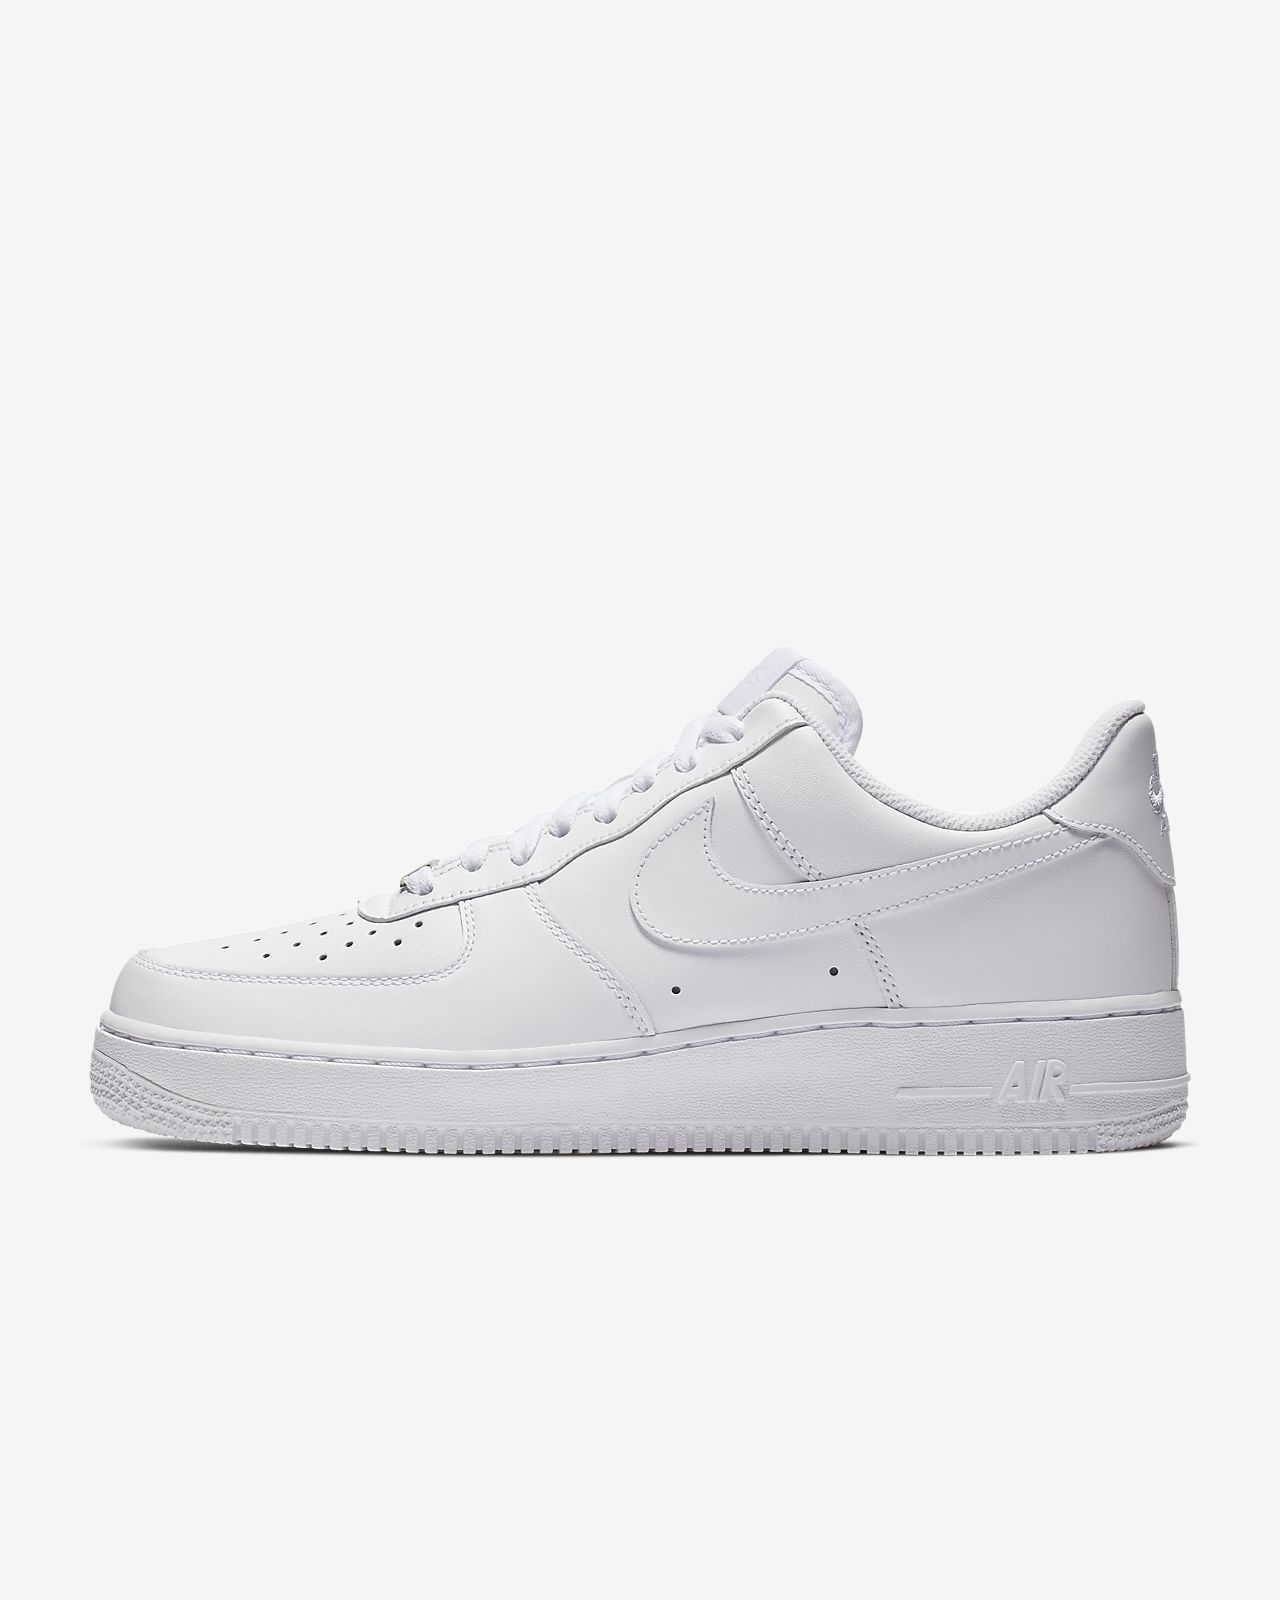 super popular 3bb94 1bea5 ... Nike Air Force 1 07-sko til kvinder